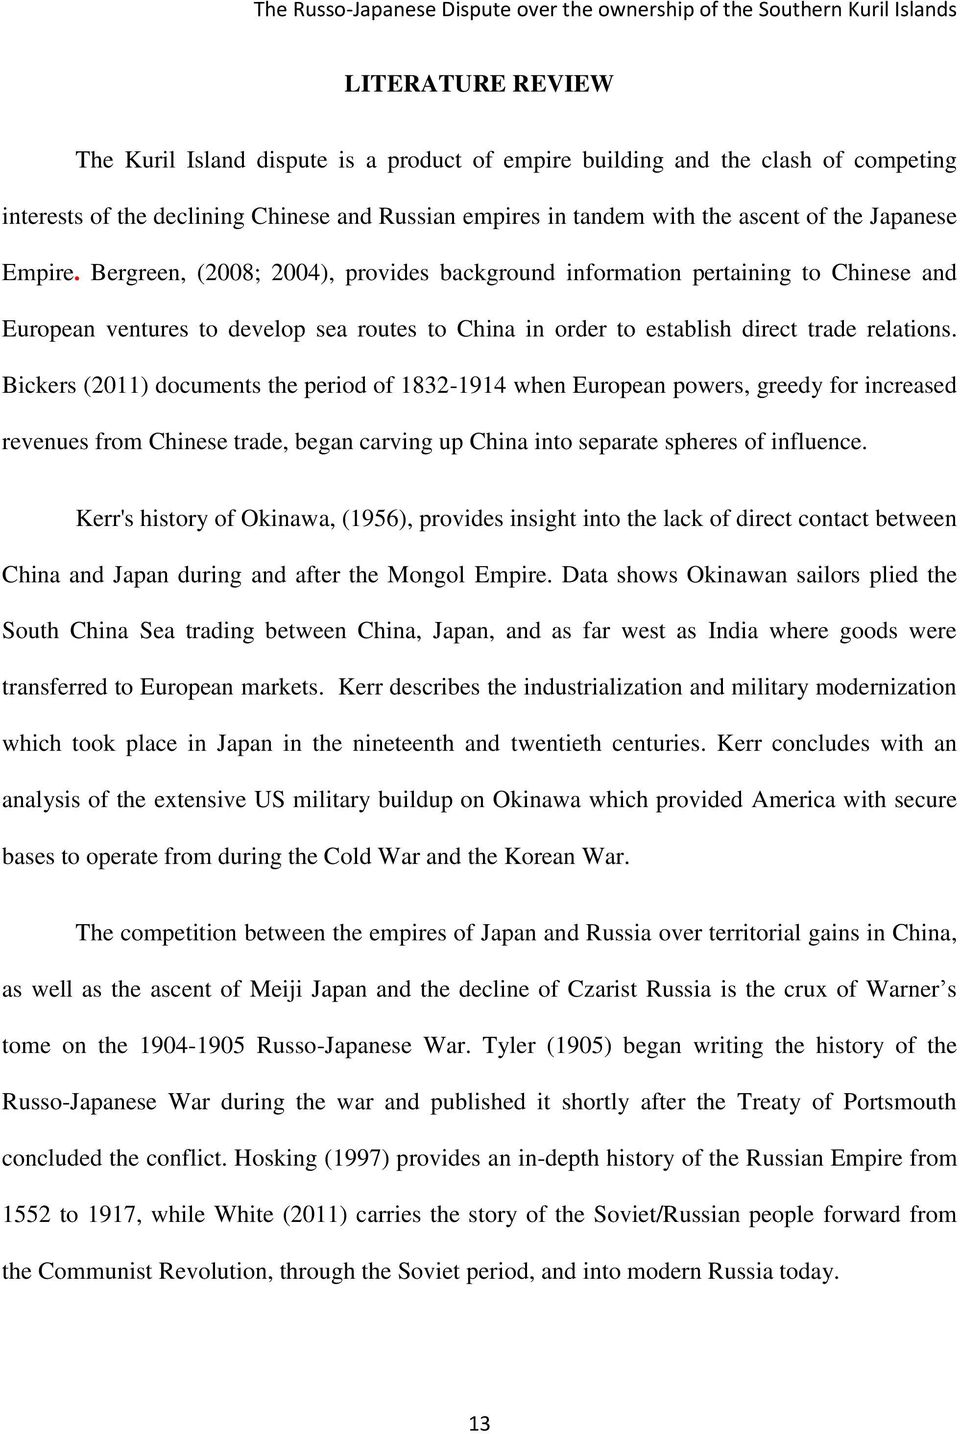 Bickers (2011) documents the period of 1832-1914 when European powers, greedy for increased revenues from Chinese trade, began carving up China into separate spheres of influence.